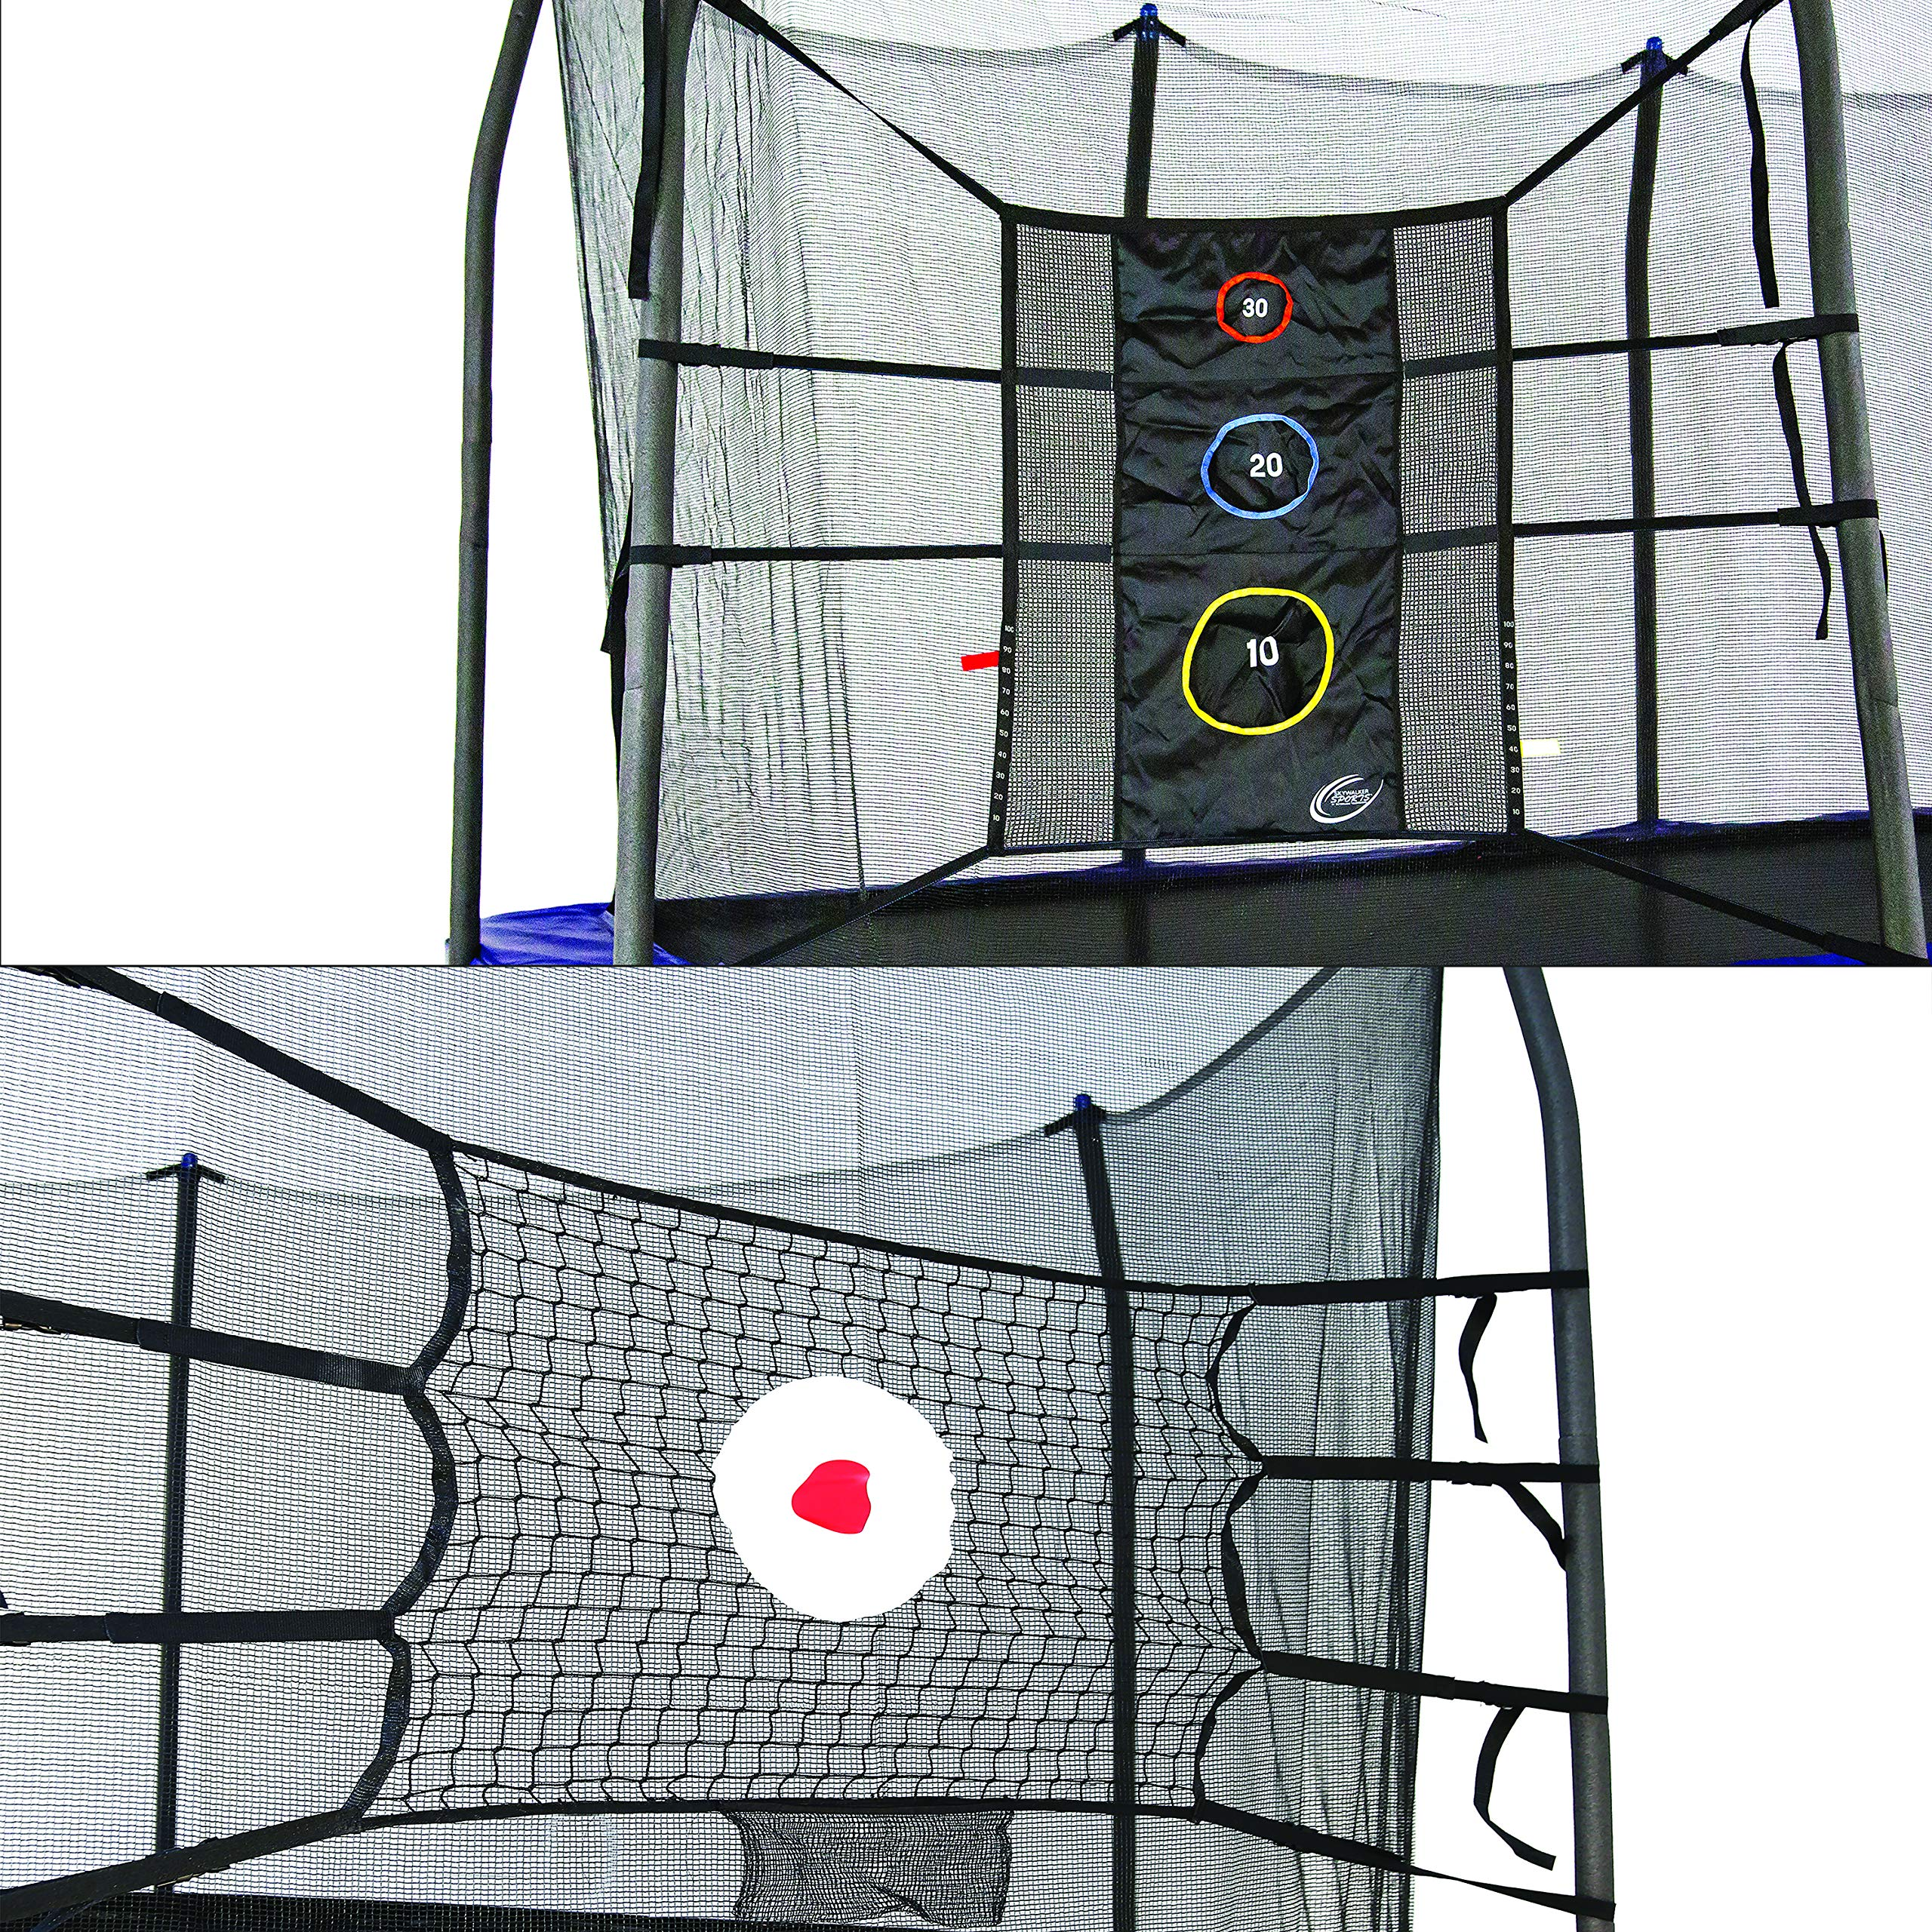 Skywalker Trampolines Game Kit w upper bounce back and triple toss games by Skywalker Trampolines